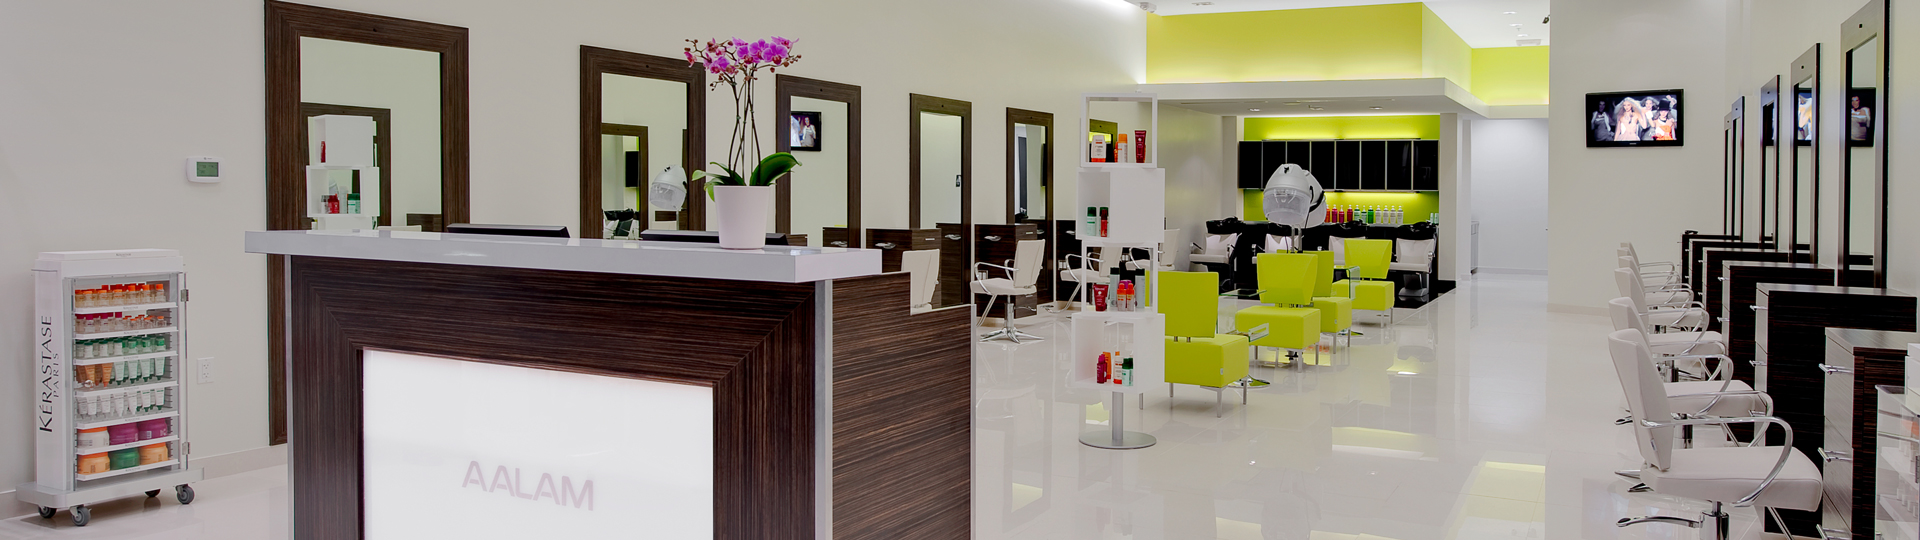 promotions dallas best hair salon plano frisco